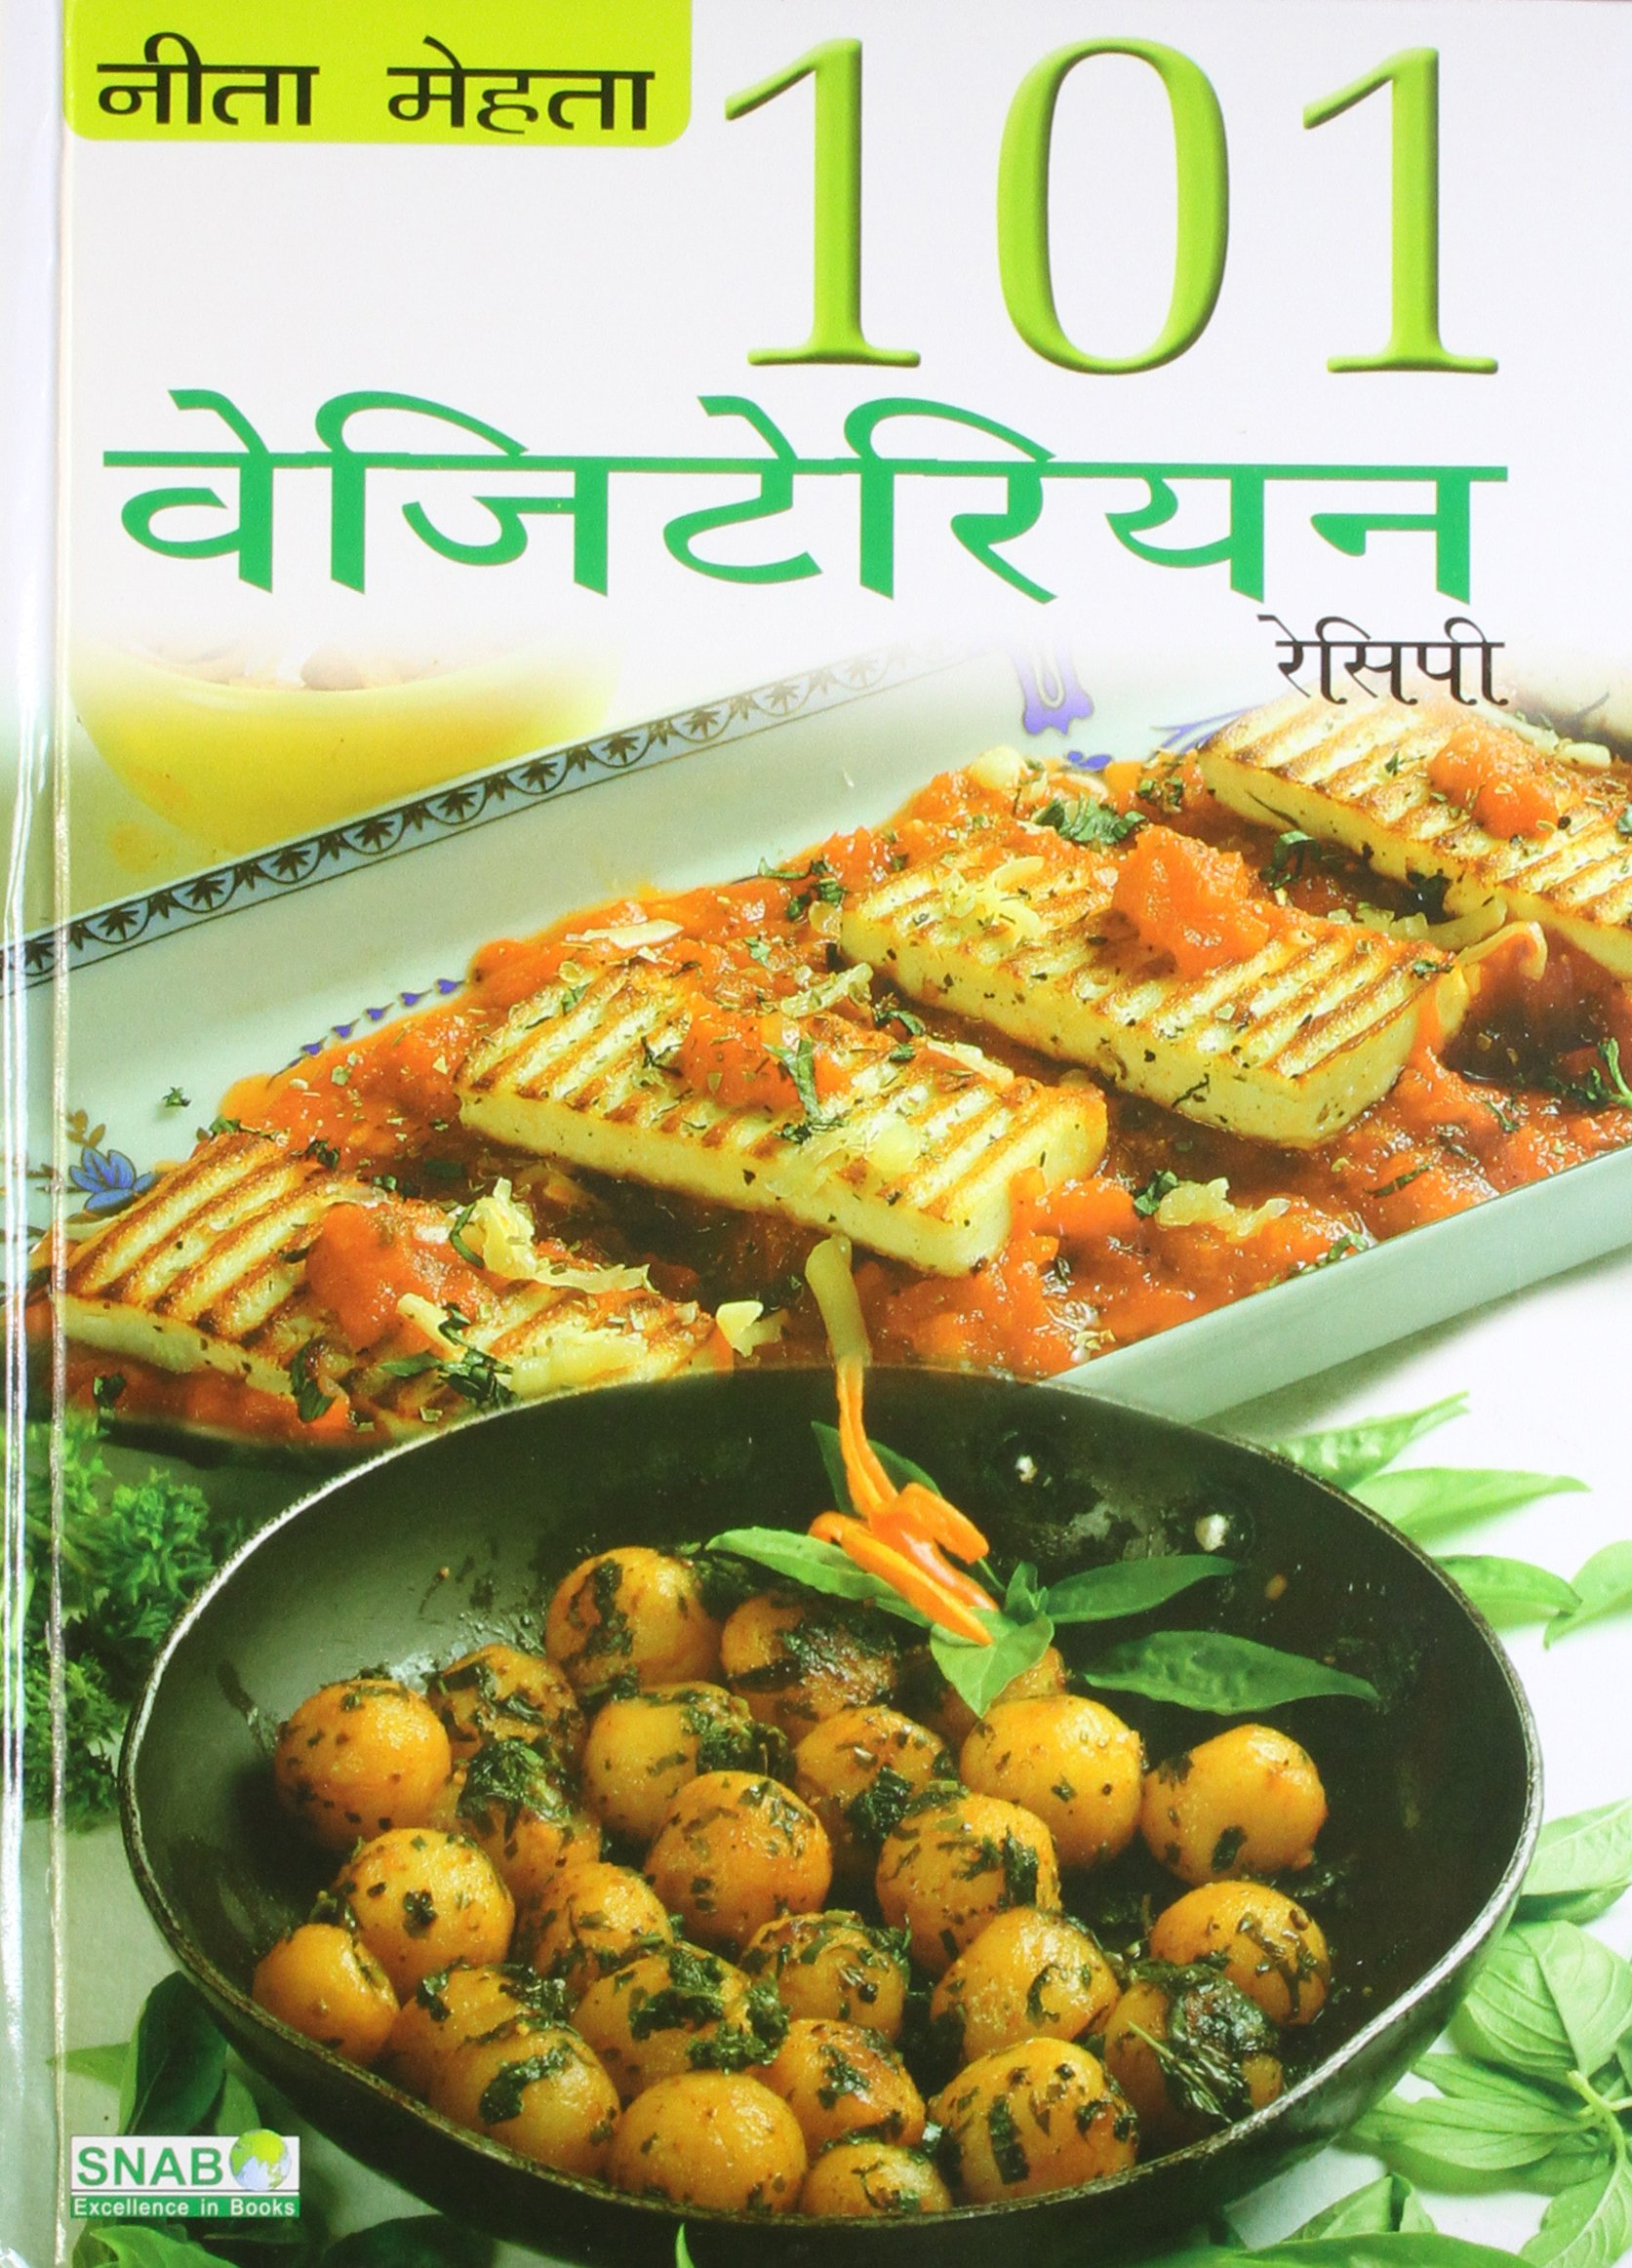 Buy 101 vegetarian recipes book online at low prices in india 101 buy 101 vegetarian recipes book online at low prices in india 101 vegetarian recipes reviews ratings amazon forumfinder Image collections